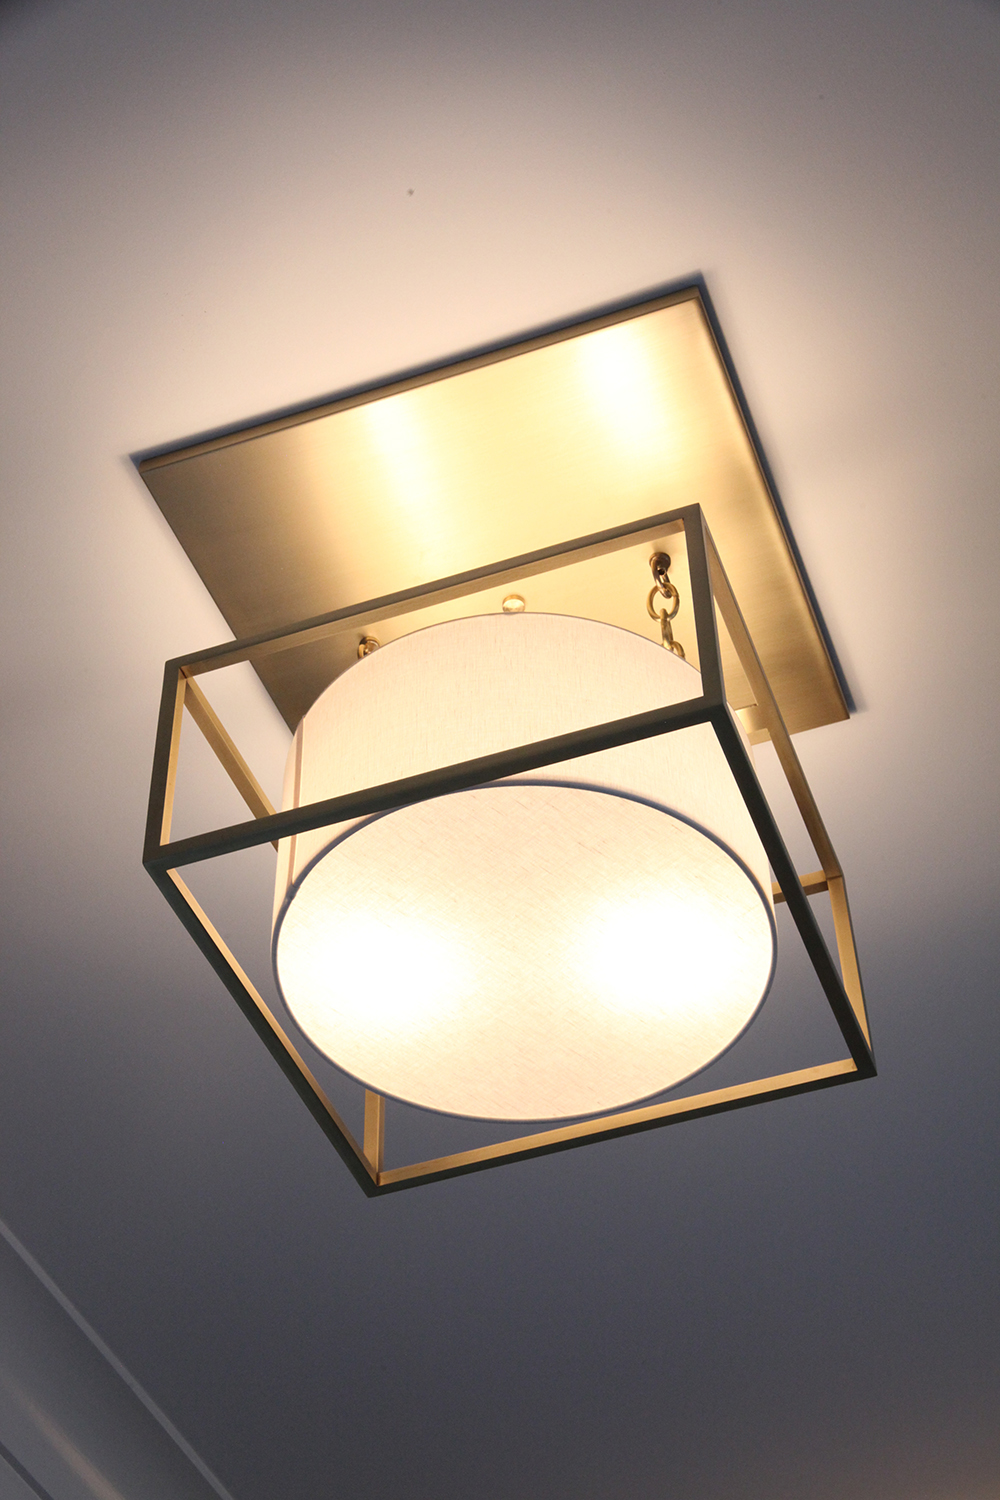 Boxed_C-169_Boxed Ceiling Fixture_Satin Brass: White.JPG